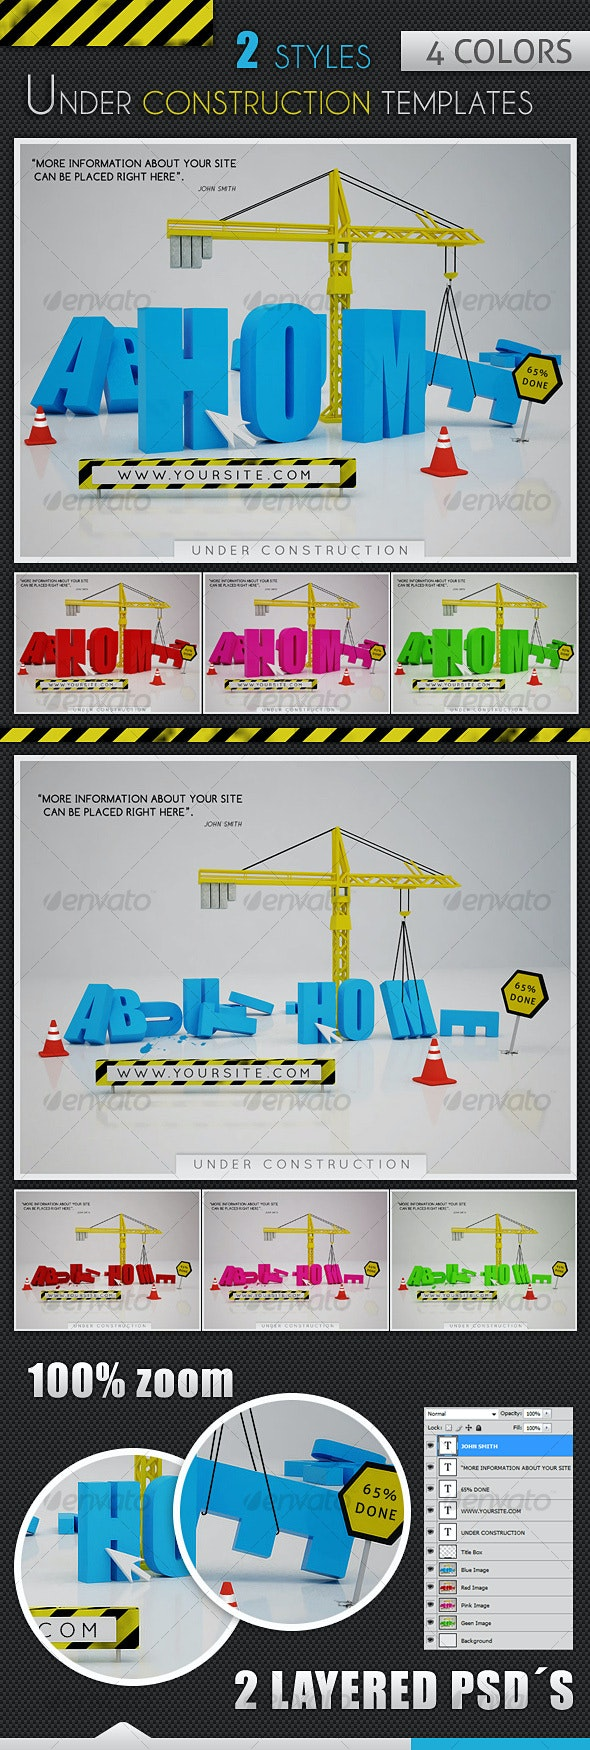 Under Construction Templates - 2 Styles - 4 Colors - Miscellaneous Web Elements